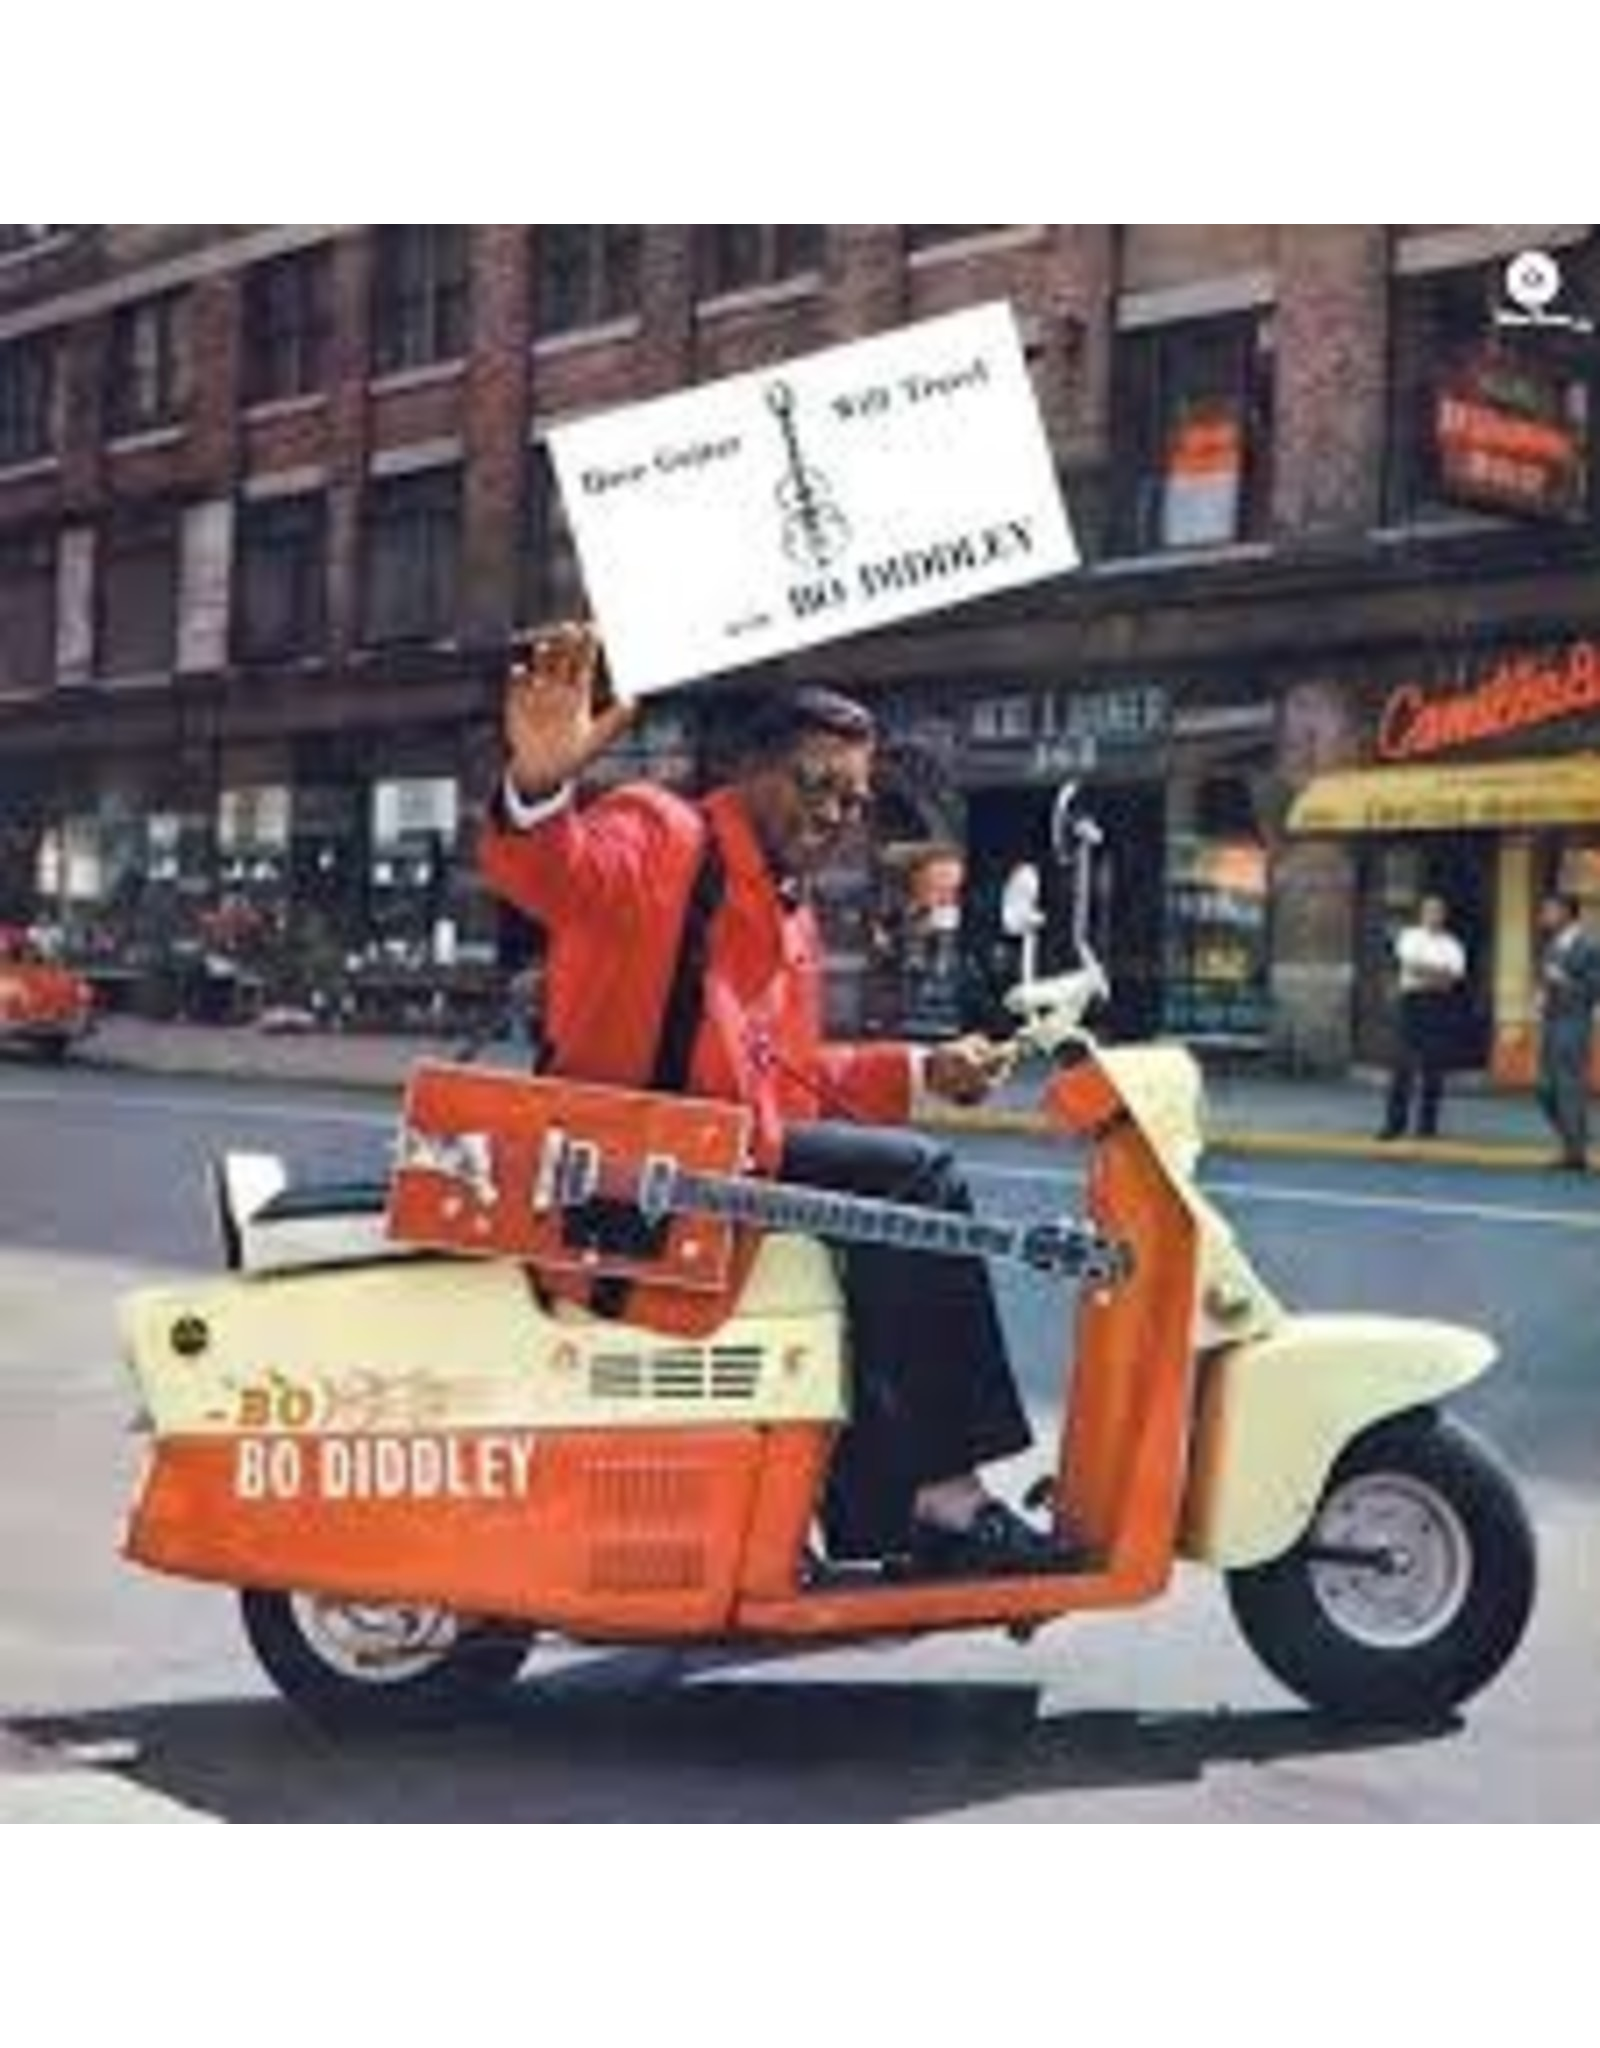 Bo Diddley - Have Guitar, Will Travel